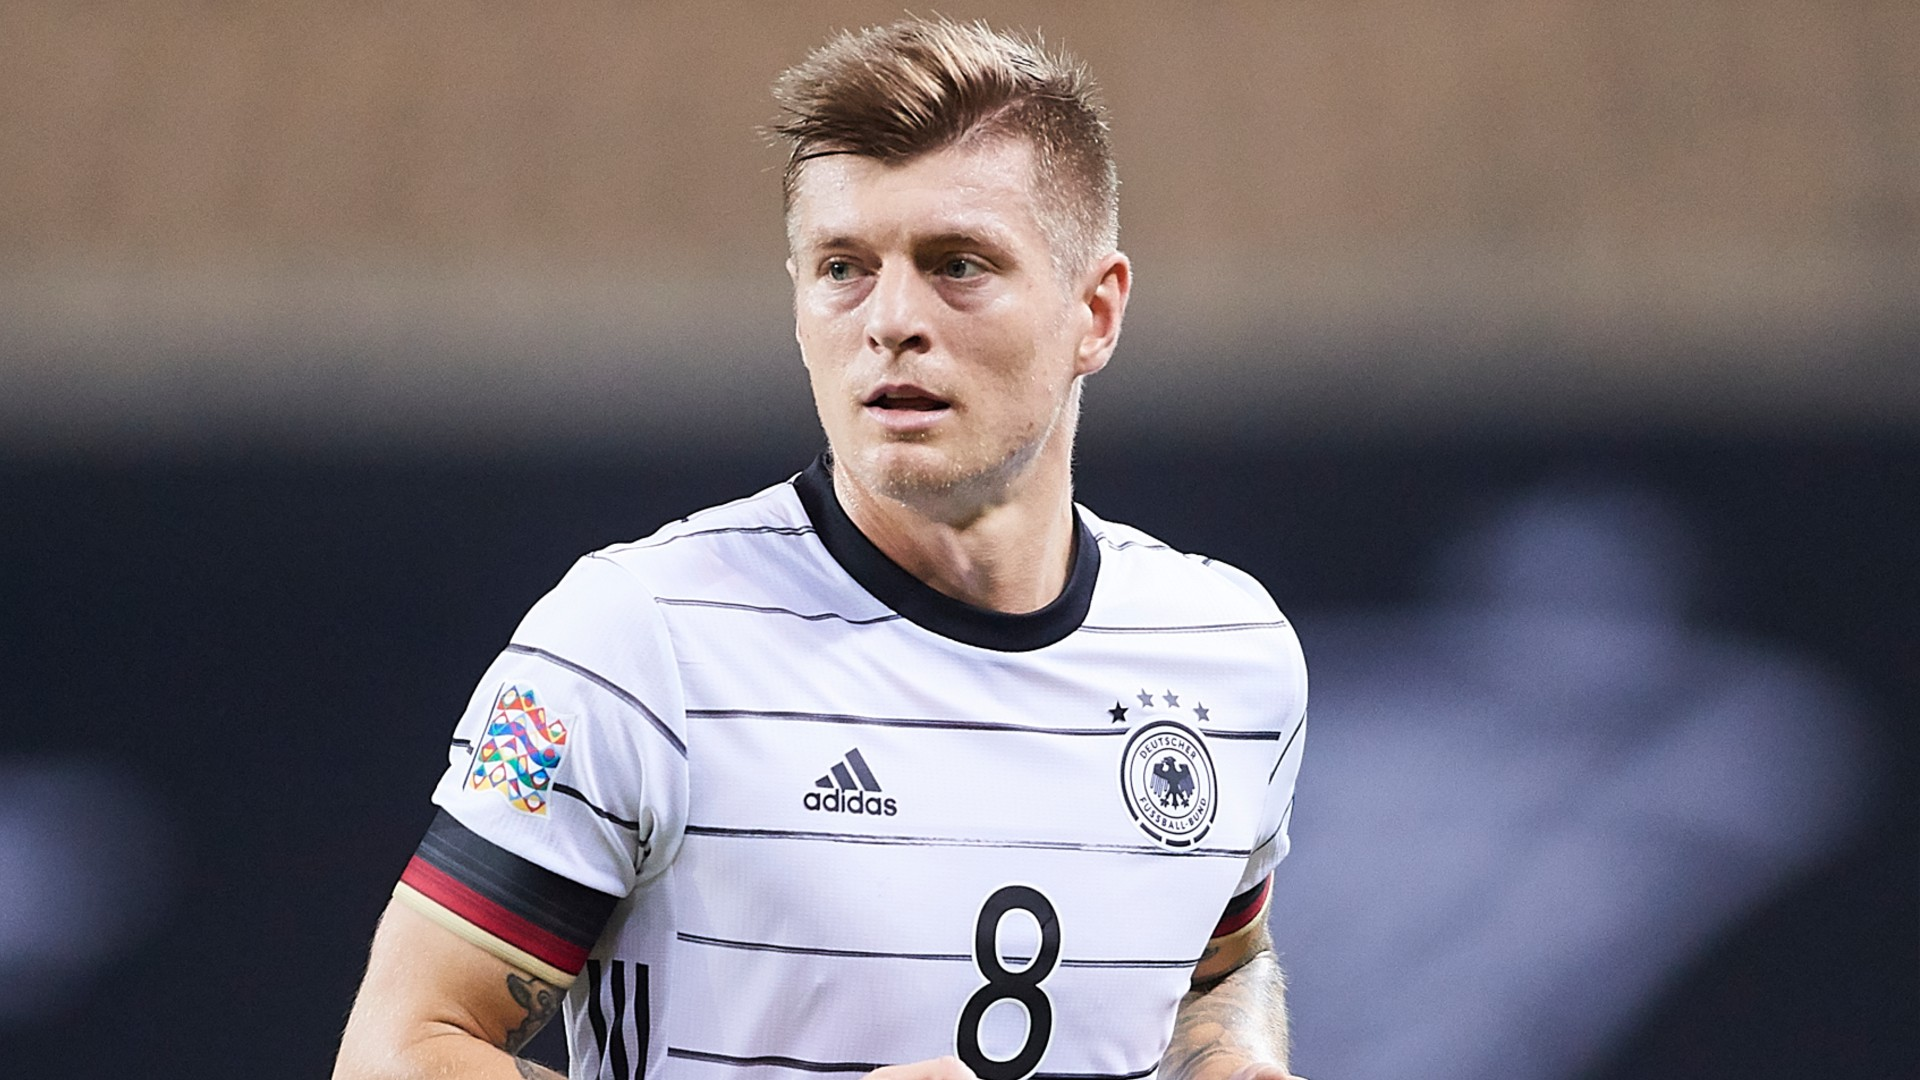 Video: Toni Kroos - Germany's generational standout